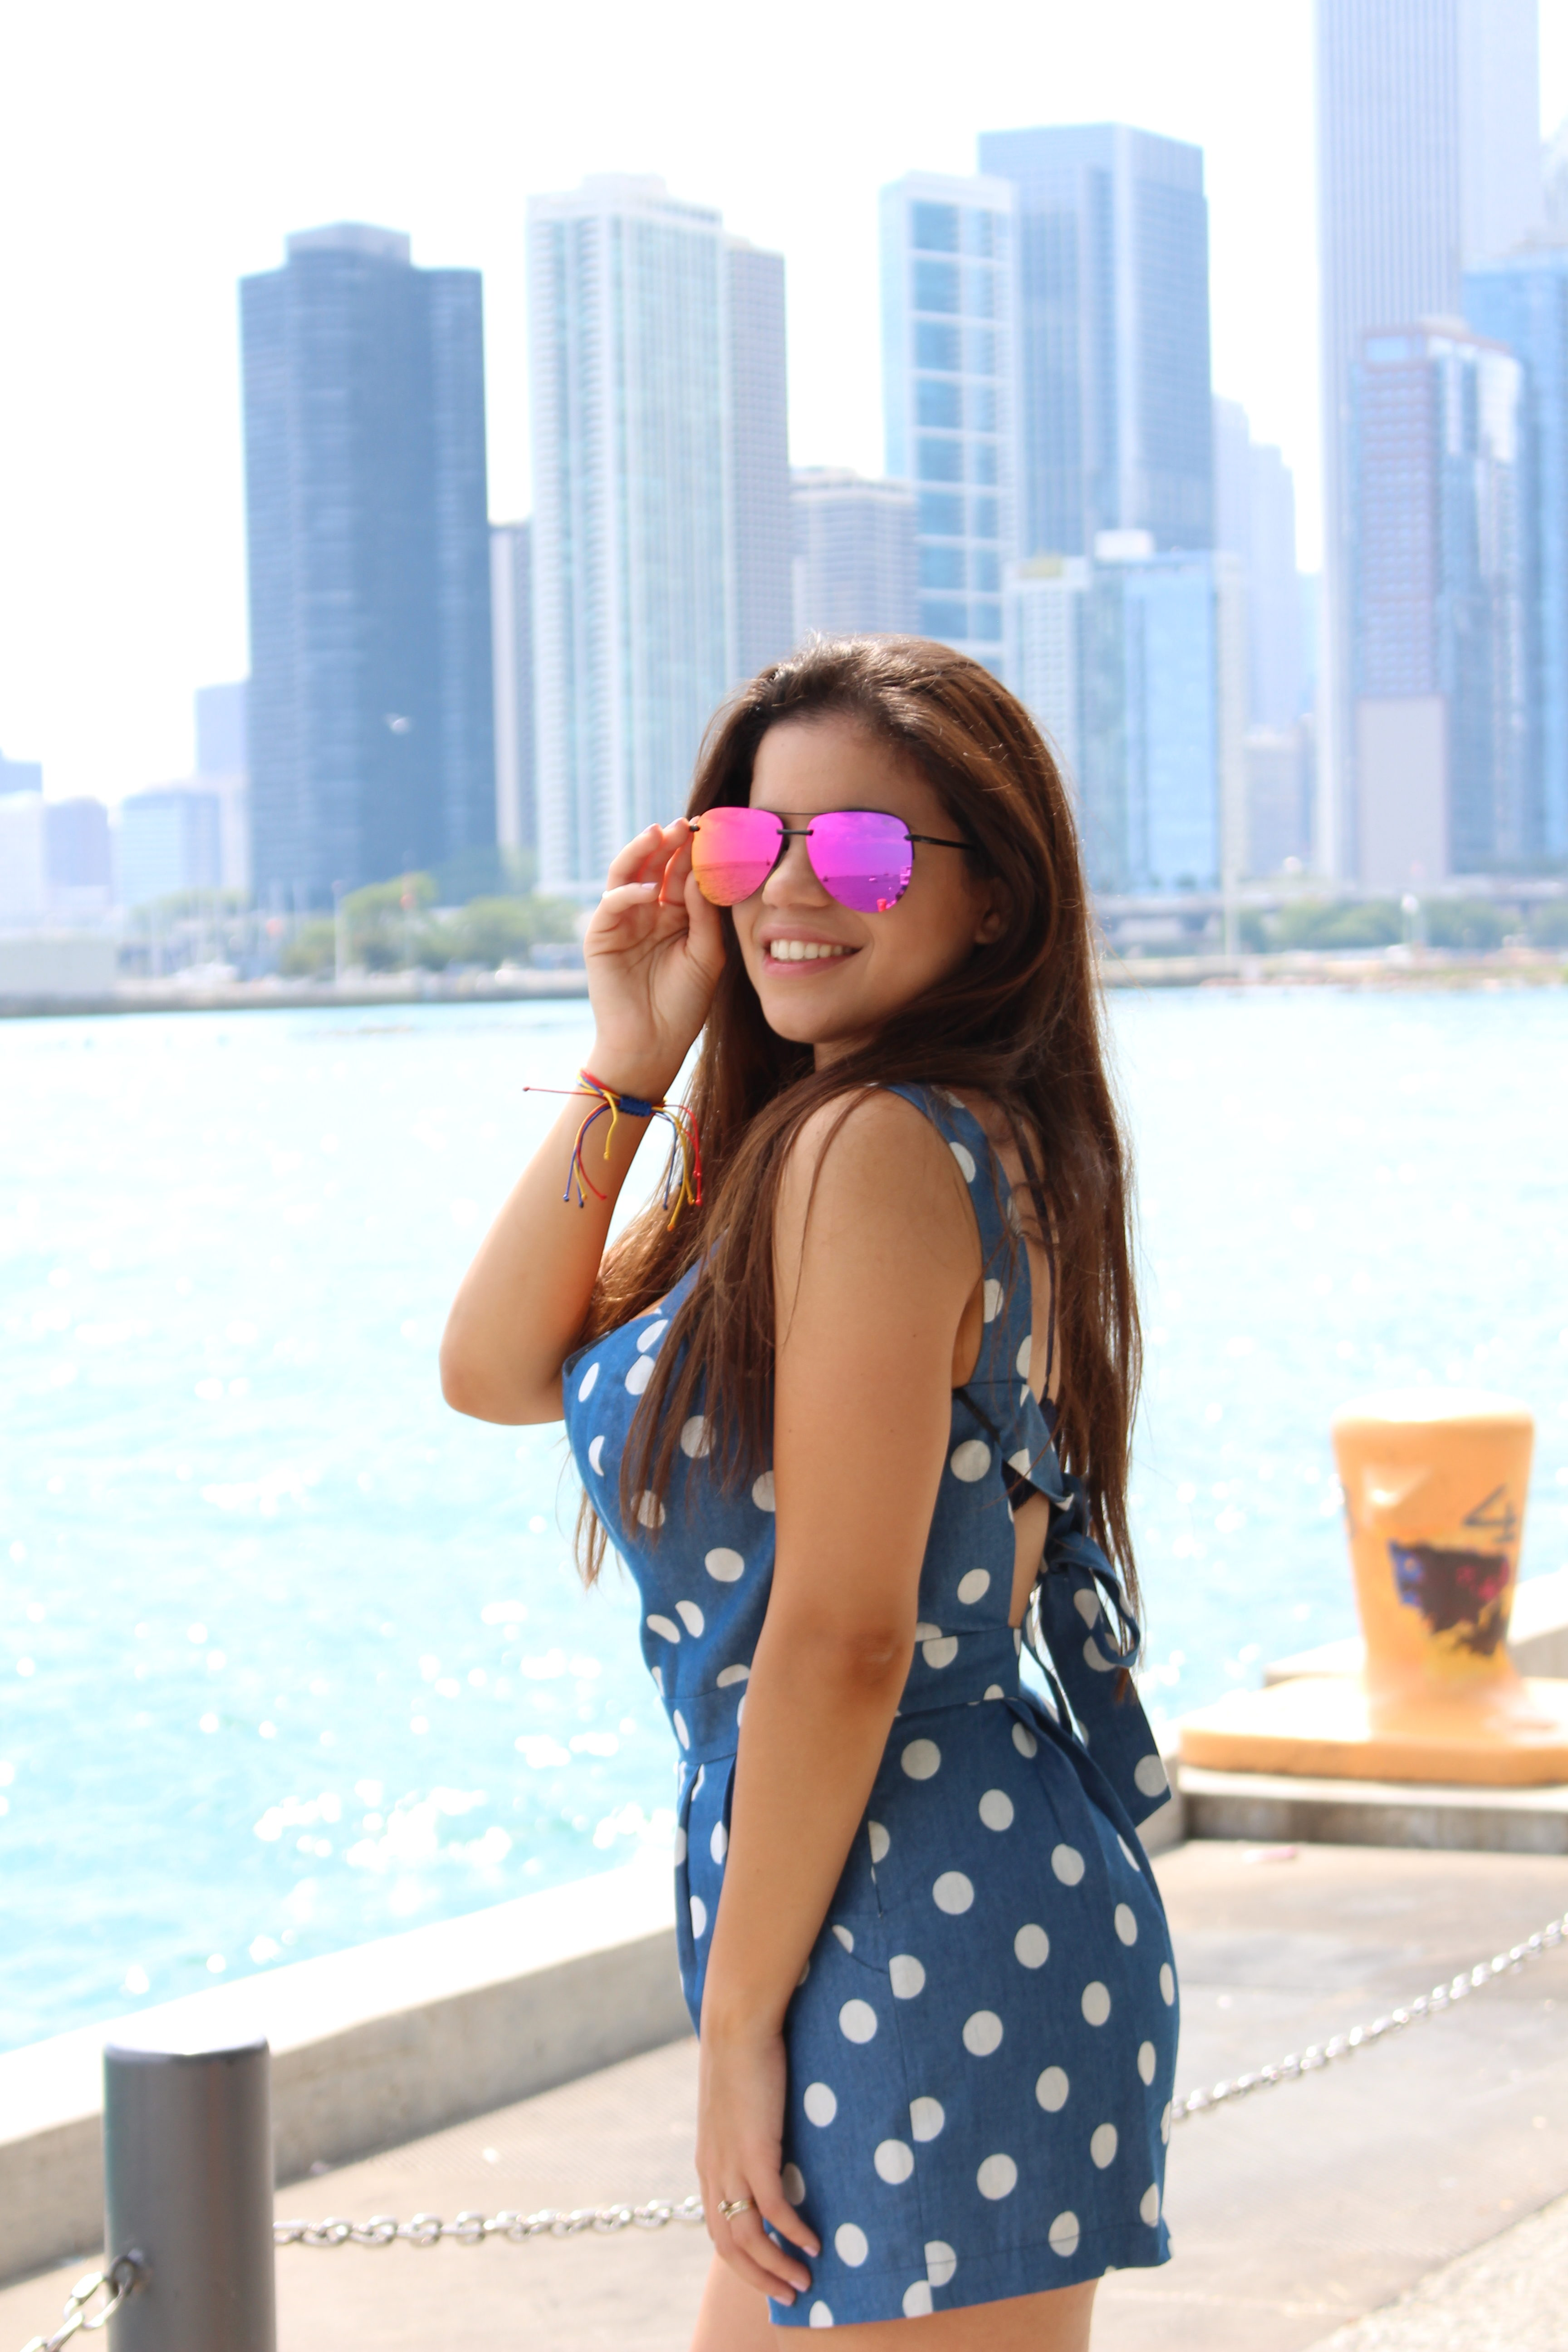 69edee8525e80 Navy Pier Jumpsuit Chicago Il Quay Australia the playa summer outfit OOTD  romper by Tu Fashion Petite Alejandra Avila